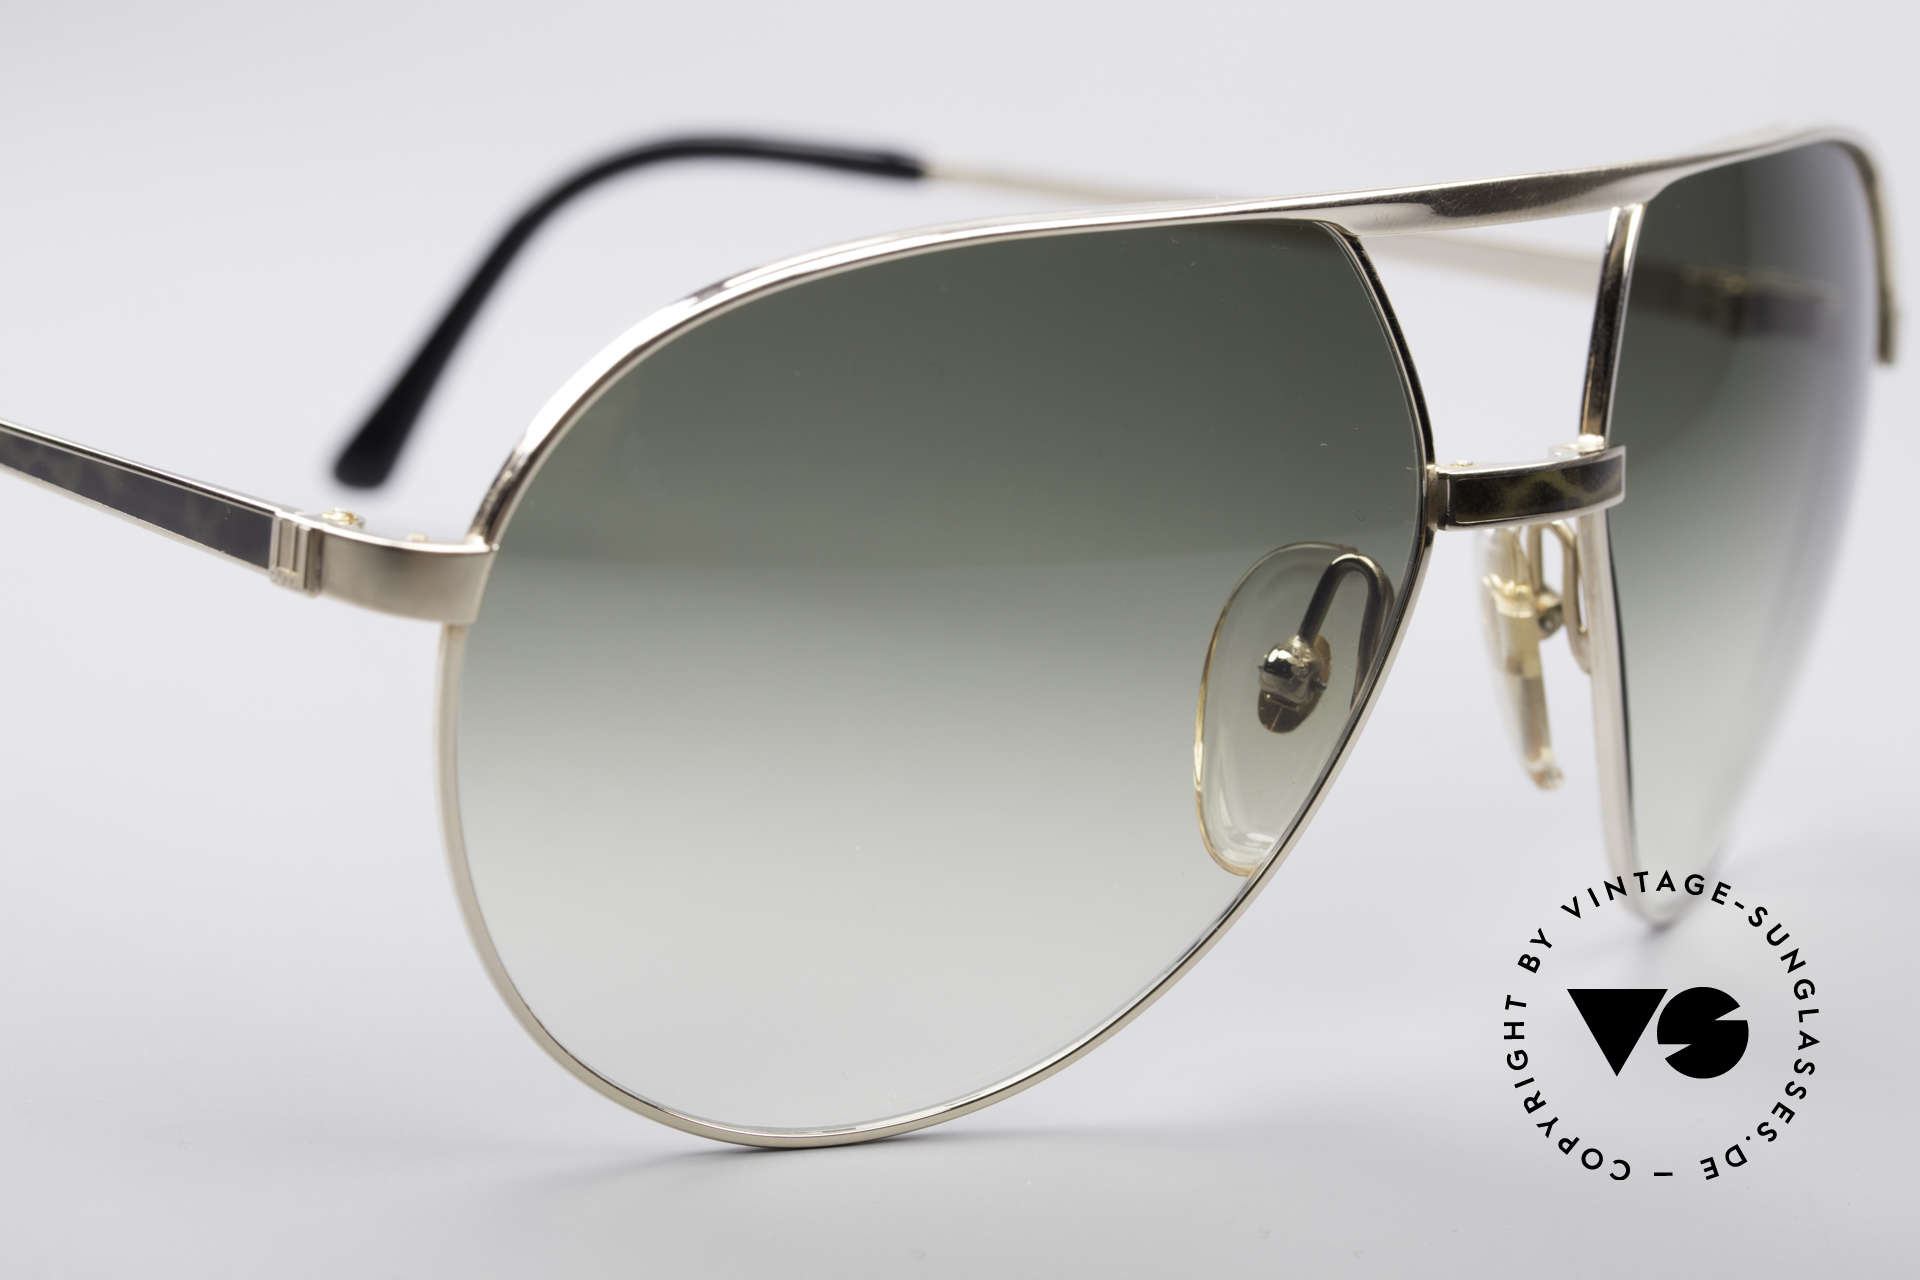 Dunhill 6042 80's Luxury Aviator Frame, just impressive and rare (You've got to feel this!), Made for Men